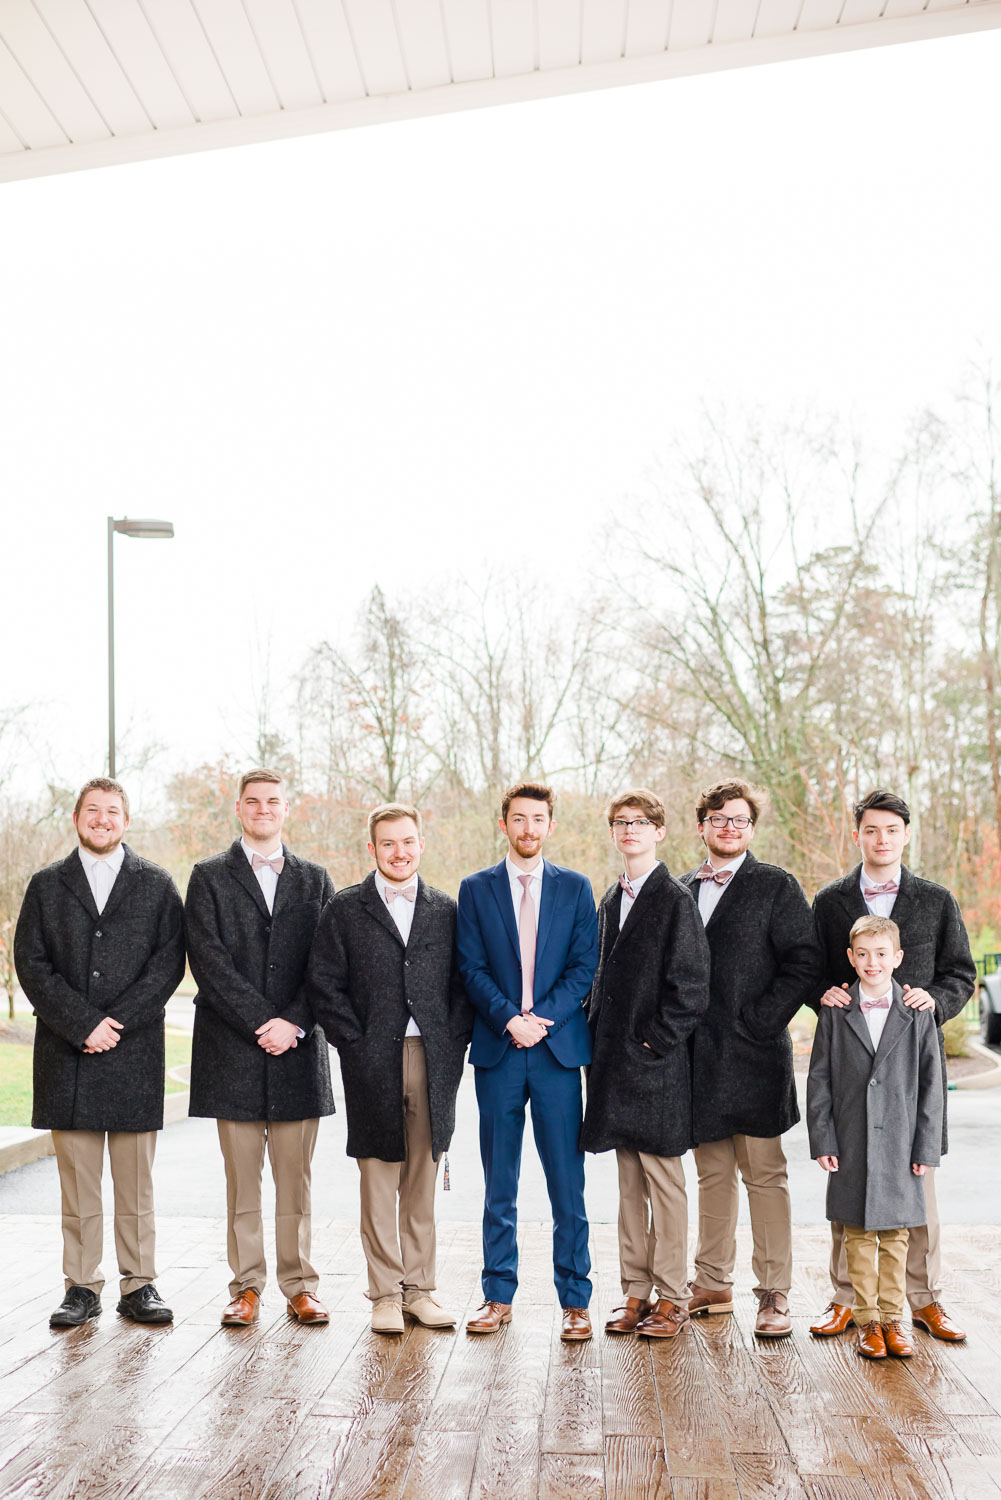 guys in gray jackets and groom in navy blue suit